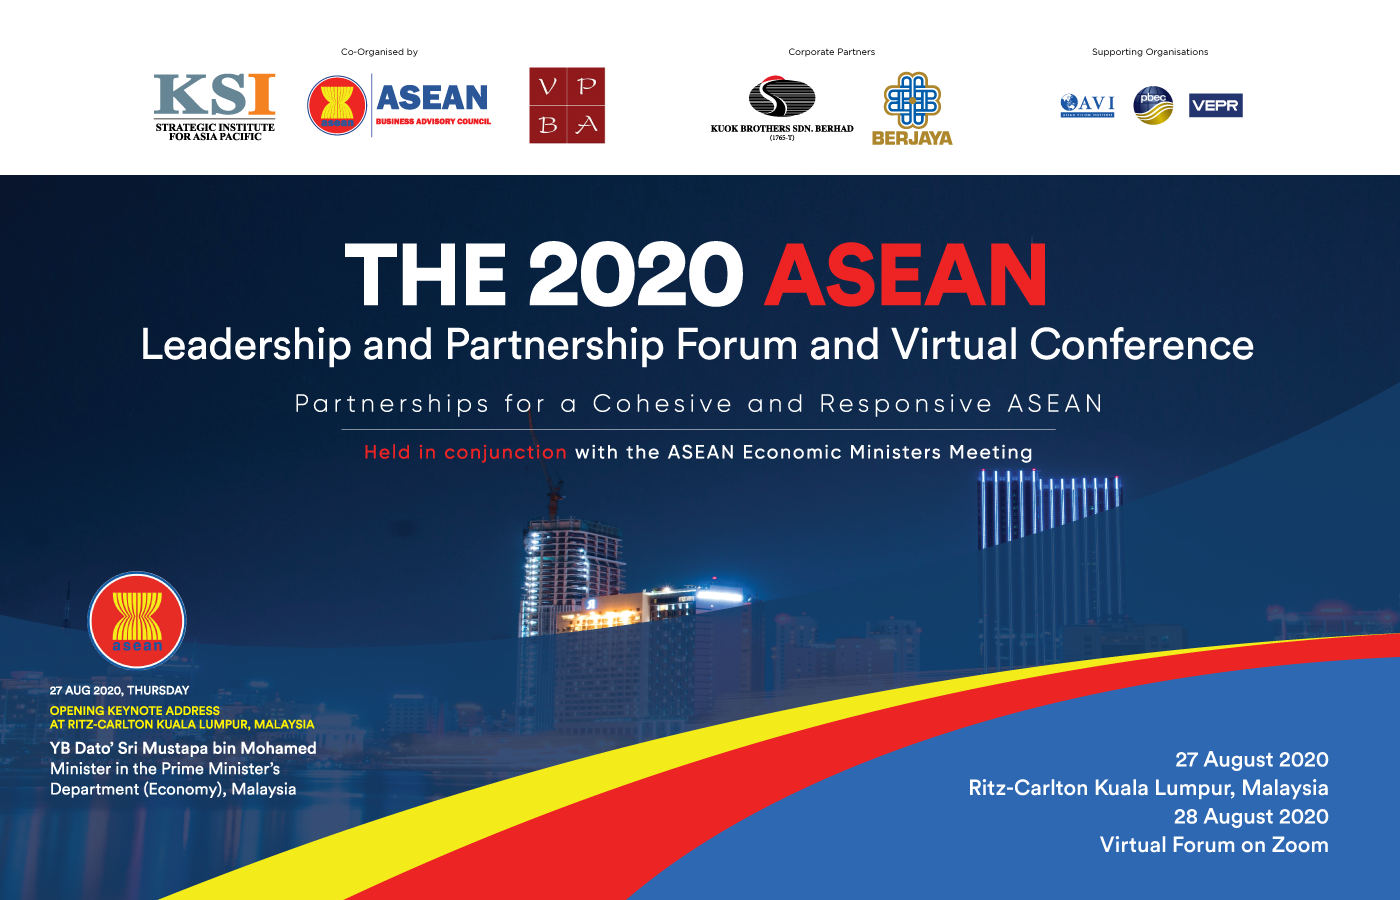 PBEC members invited to The ASEAN Leadership and Partnership Forum